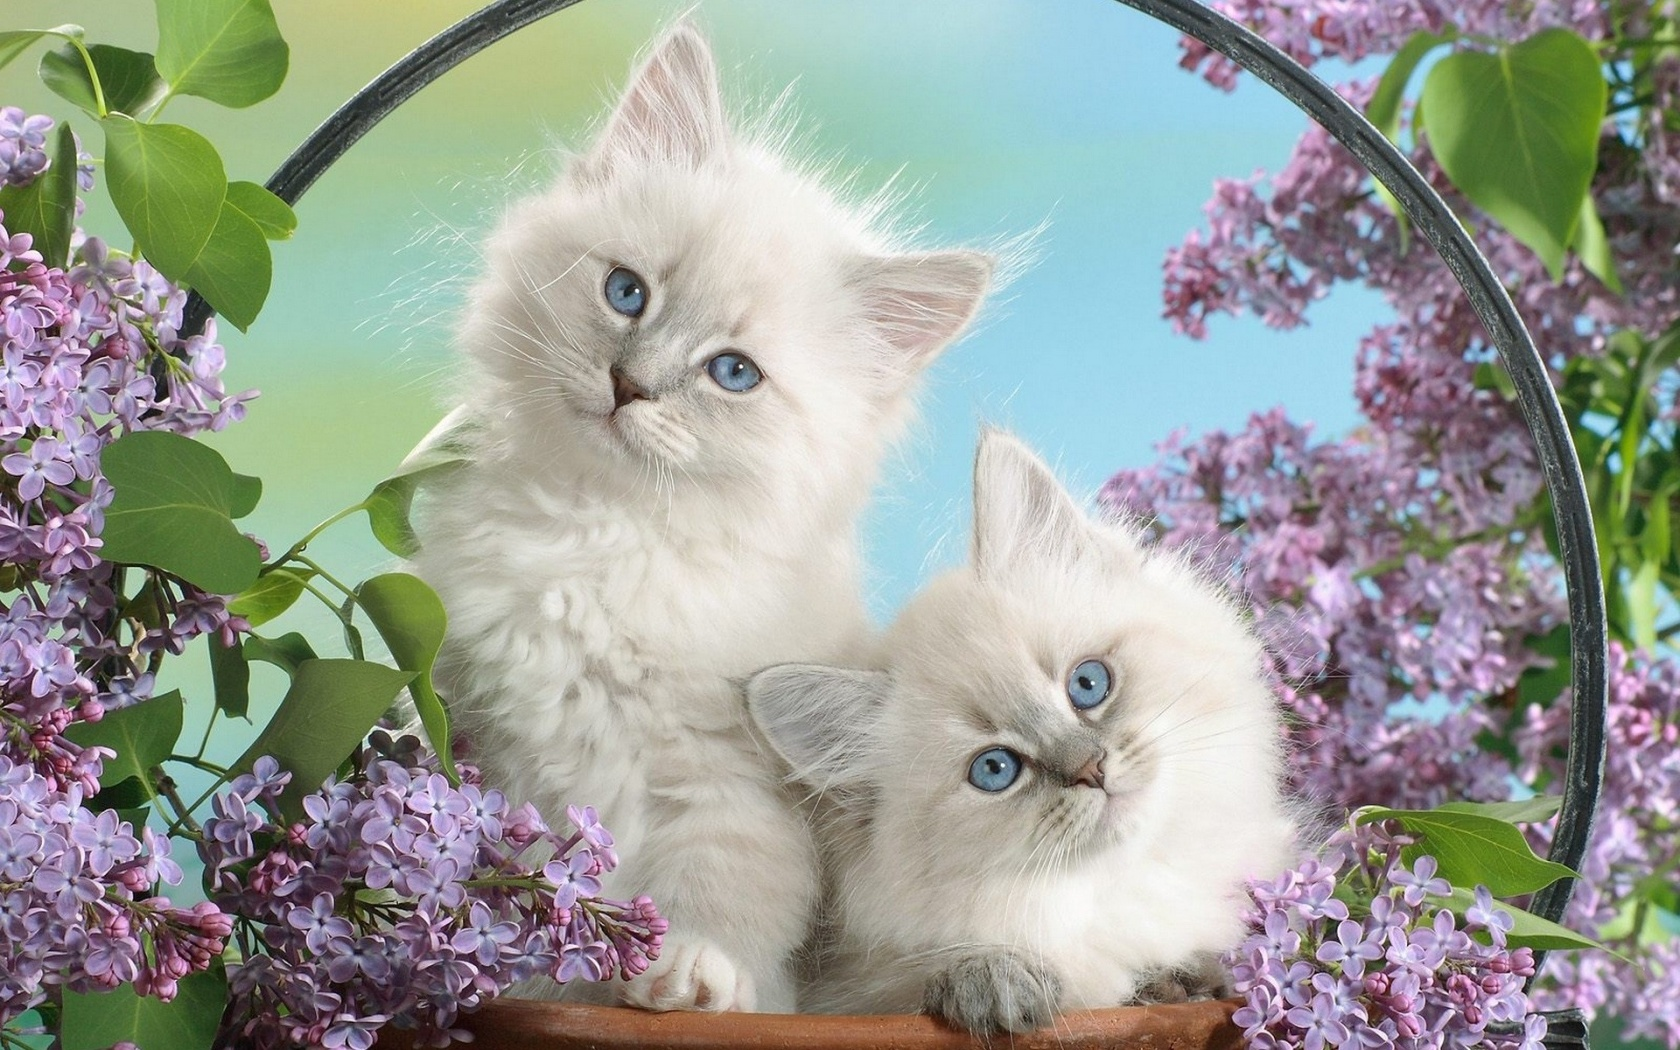 Two white fluffy cats